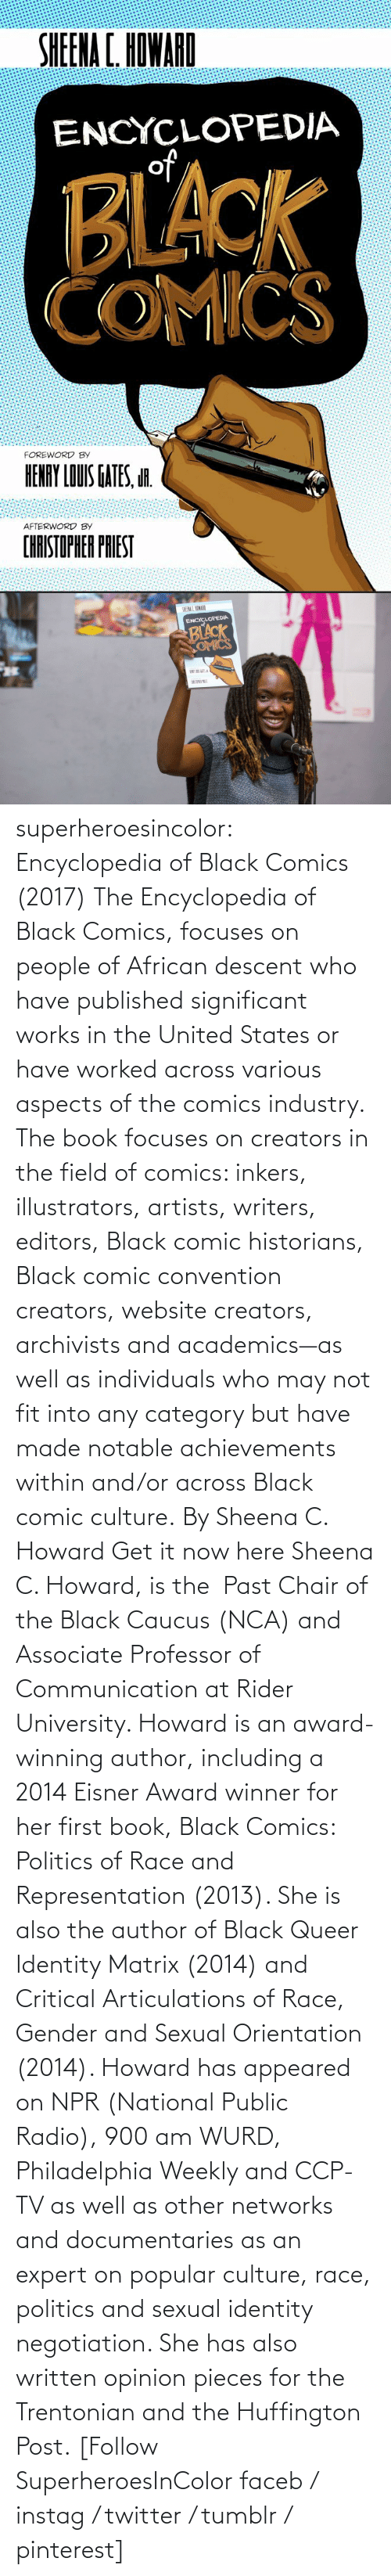 In The: superheroesincolor: Encyclopedia of Black Comics (2017) The Encyclopedia of Black Comics, focuses on people of African descent who have published significant works in the United States or have worked across various aspects of the comics industry.  The book focuses on creators in the field of comics: inkers, illustrators, artists, writers, editors, Black comic historians, Black comic convention creators, website creators, archivists and academics—as well as individuals who may not fit into any category but have made notable achievements within and/or across Black comic culture. By Sheena C. Howard Get it now here  Sheena C. Howard, is the  Past Chair of the Black Caucus (NCA) and Associate Professor of Communication at Rider University. Howard is an award-winning author, including a 2014 Eisner Award winner for her first book, Black Comics: Politics of Race and Representation (2013). She is also the author of Black Queer Identity Matrix (2014) and Critical Articulations of Race, Gender and Sexual Orientation (2014). Howard has appeared on NPR (National Public Radio), 900 am WURD, Philadelphia Weekly and CCP-TV as well as other networks and documentaries as an expert on popular culture, race, politics and sexual identity negotiation. She has also written opinion pieces for the Trentonian and the Huffington Post.   [Follow SuperheroesInColor faceb / instag / twitter / tumblr / pinterest]